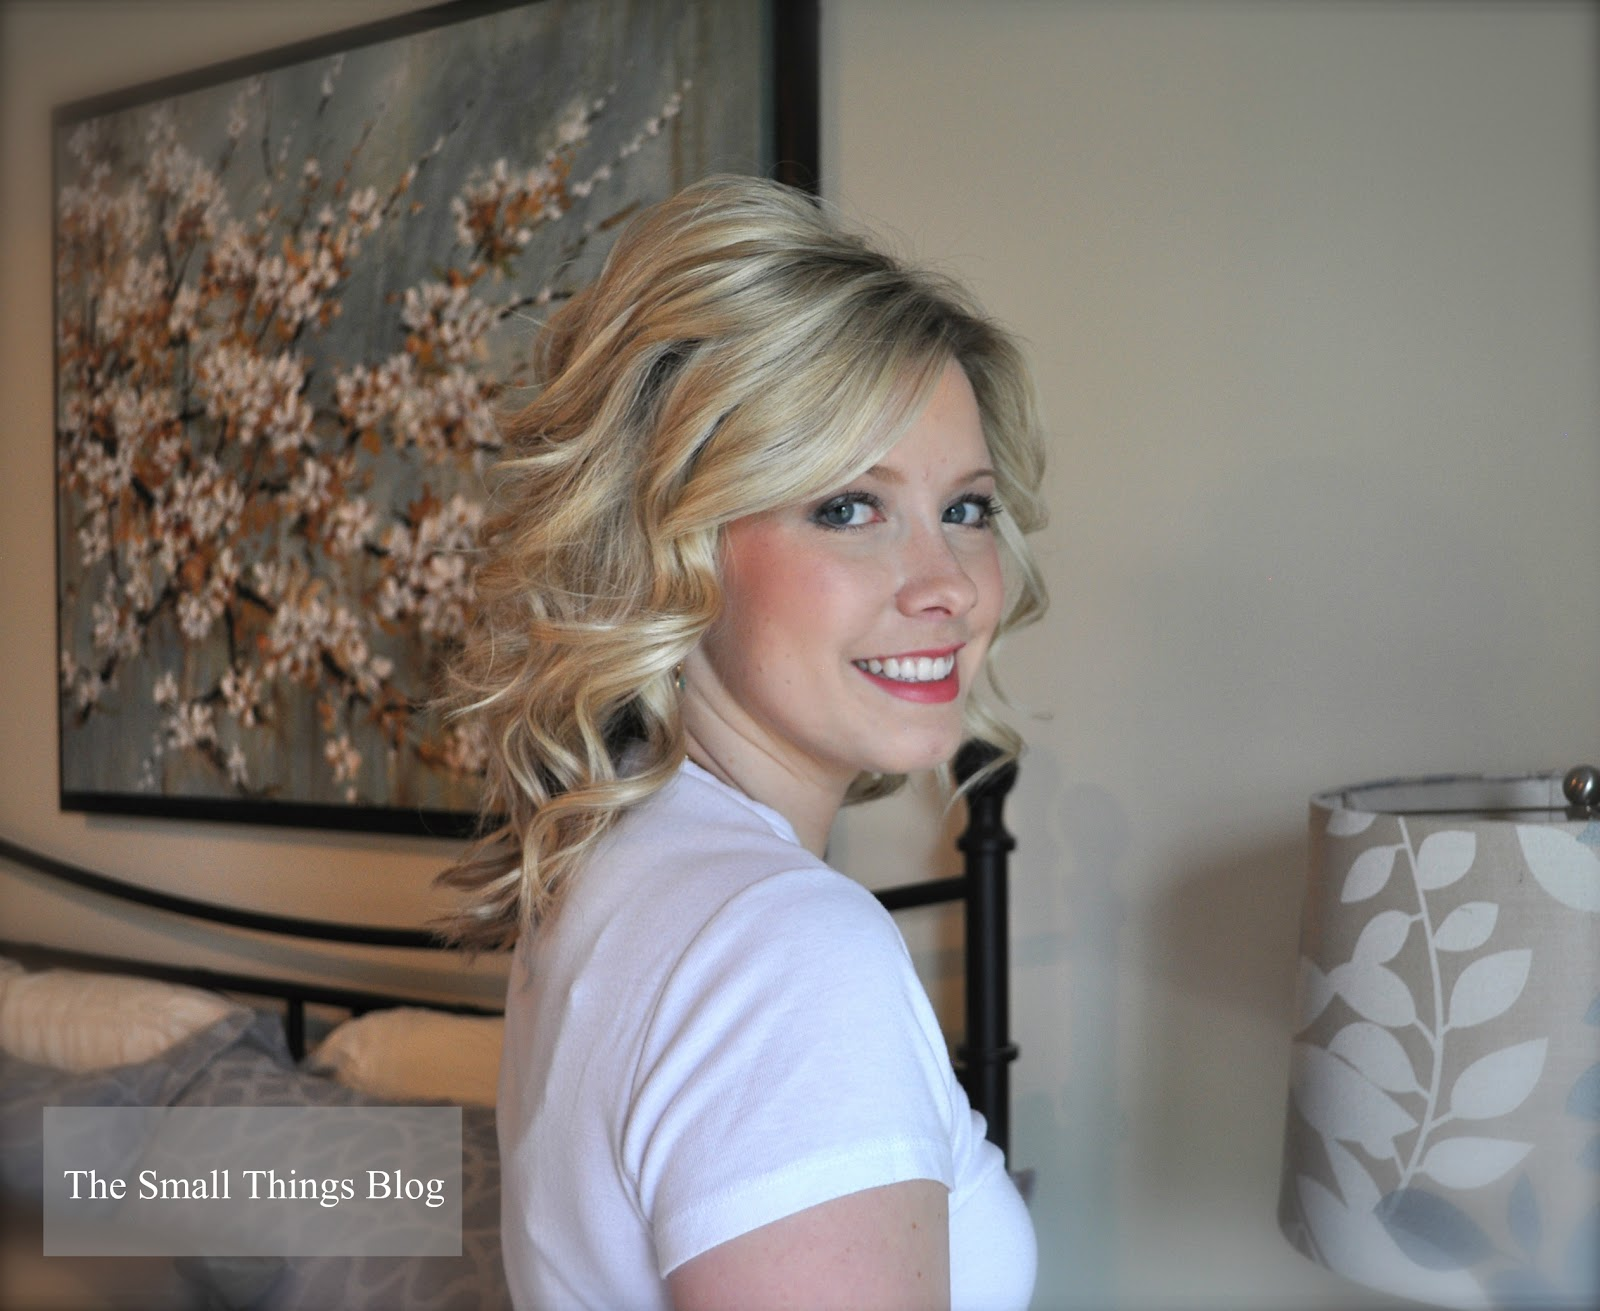 Hair Wand Styles: How To Use A Curling Wand